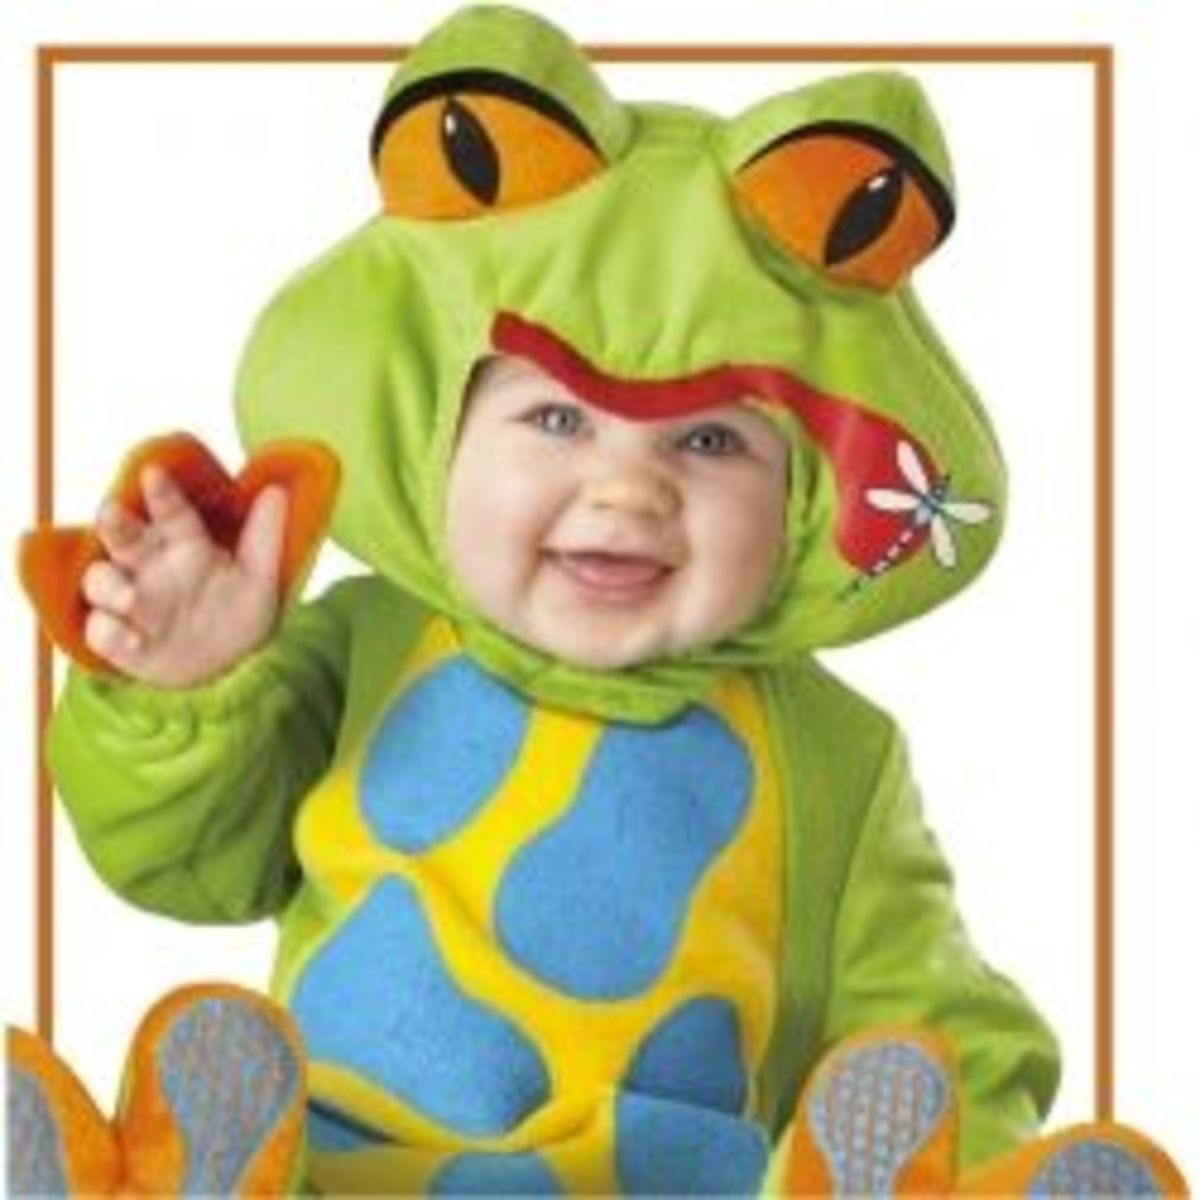 This adorable frog costume is featured below.